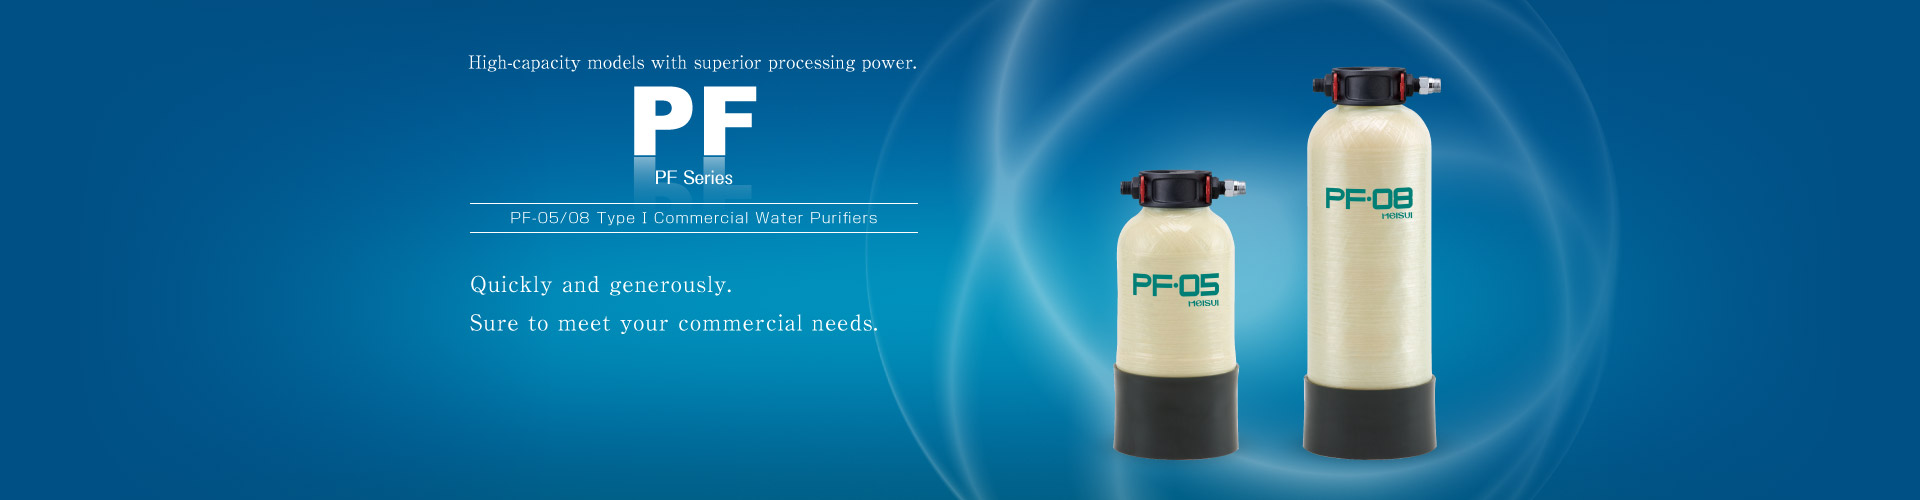 PF Series Type I Commercial Water Purifiers